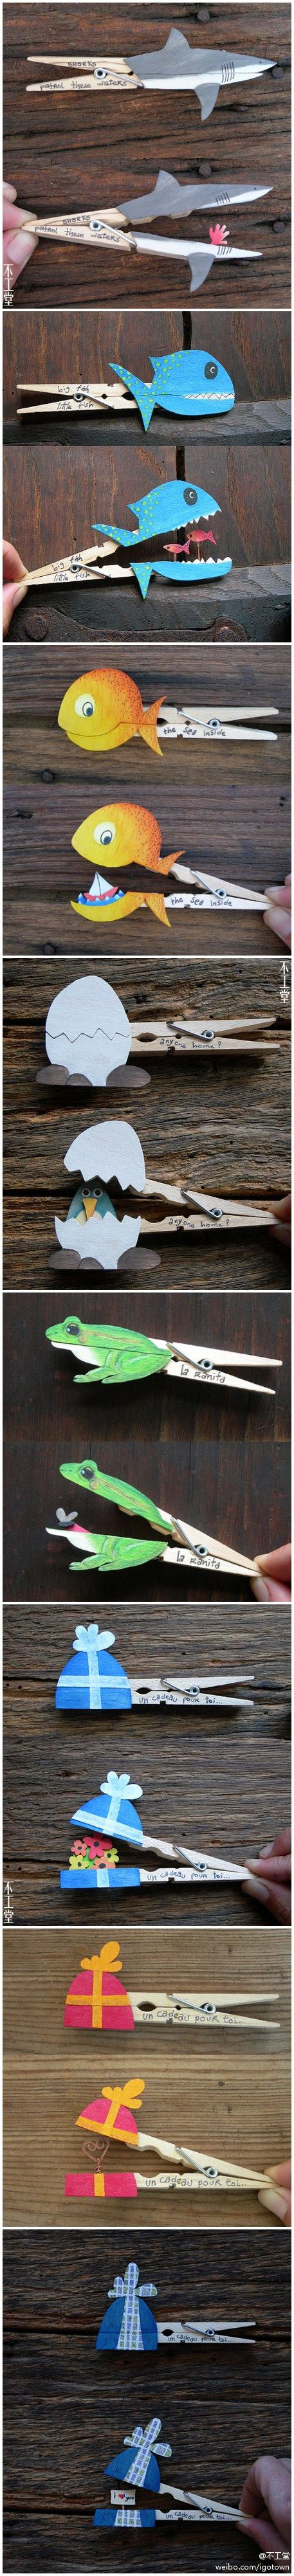 clothes pin animals - really cute! ideas